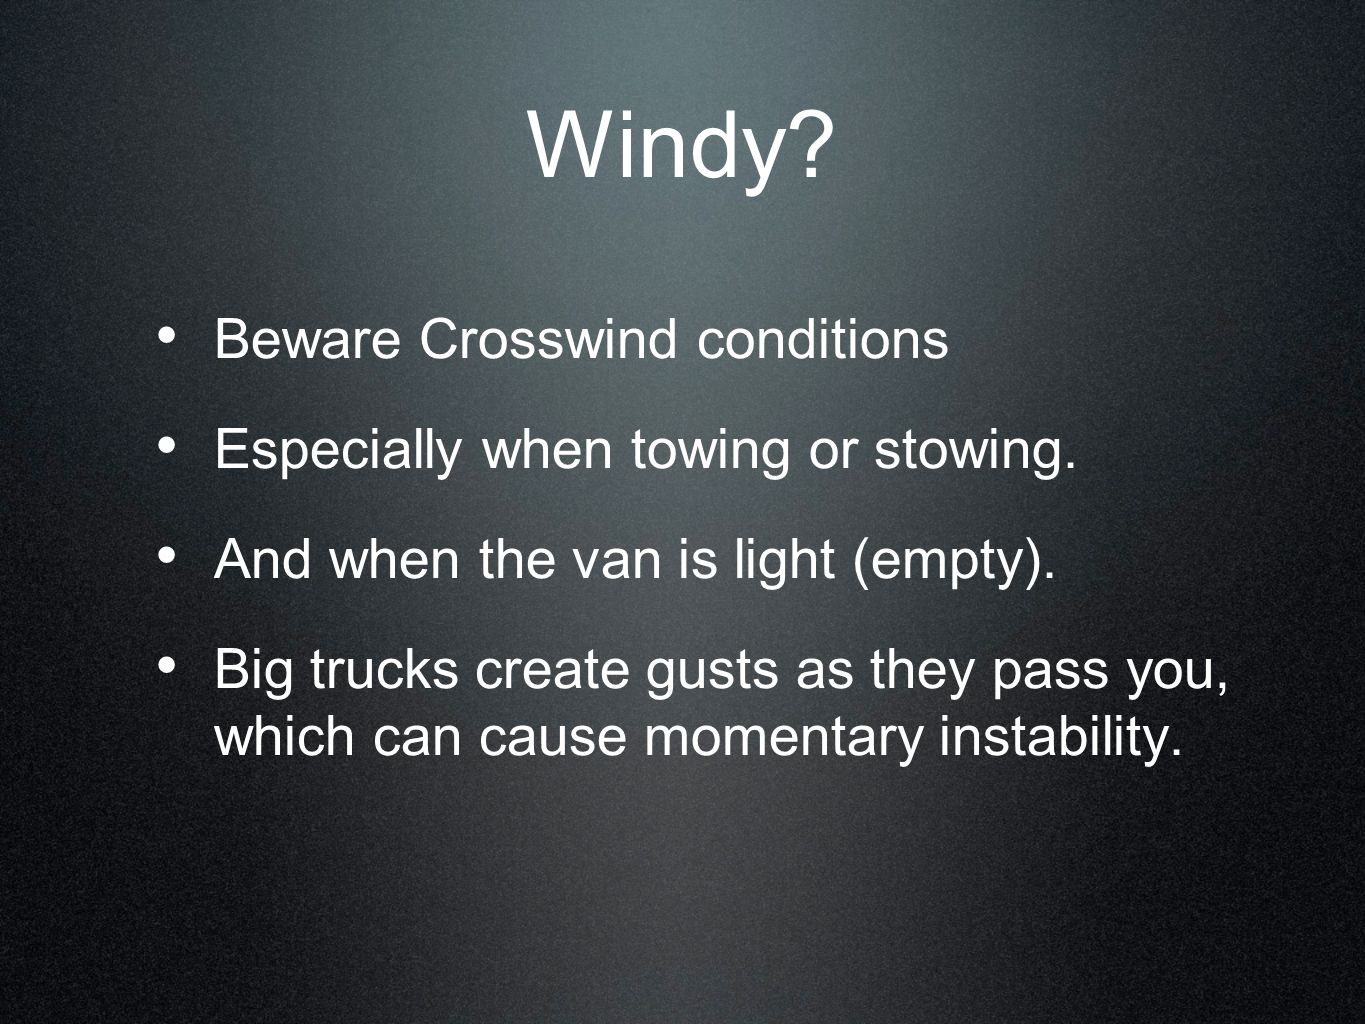 Windy Beware Crosswind conditions Especially when towing or stowing.